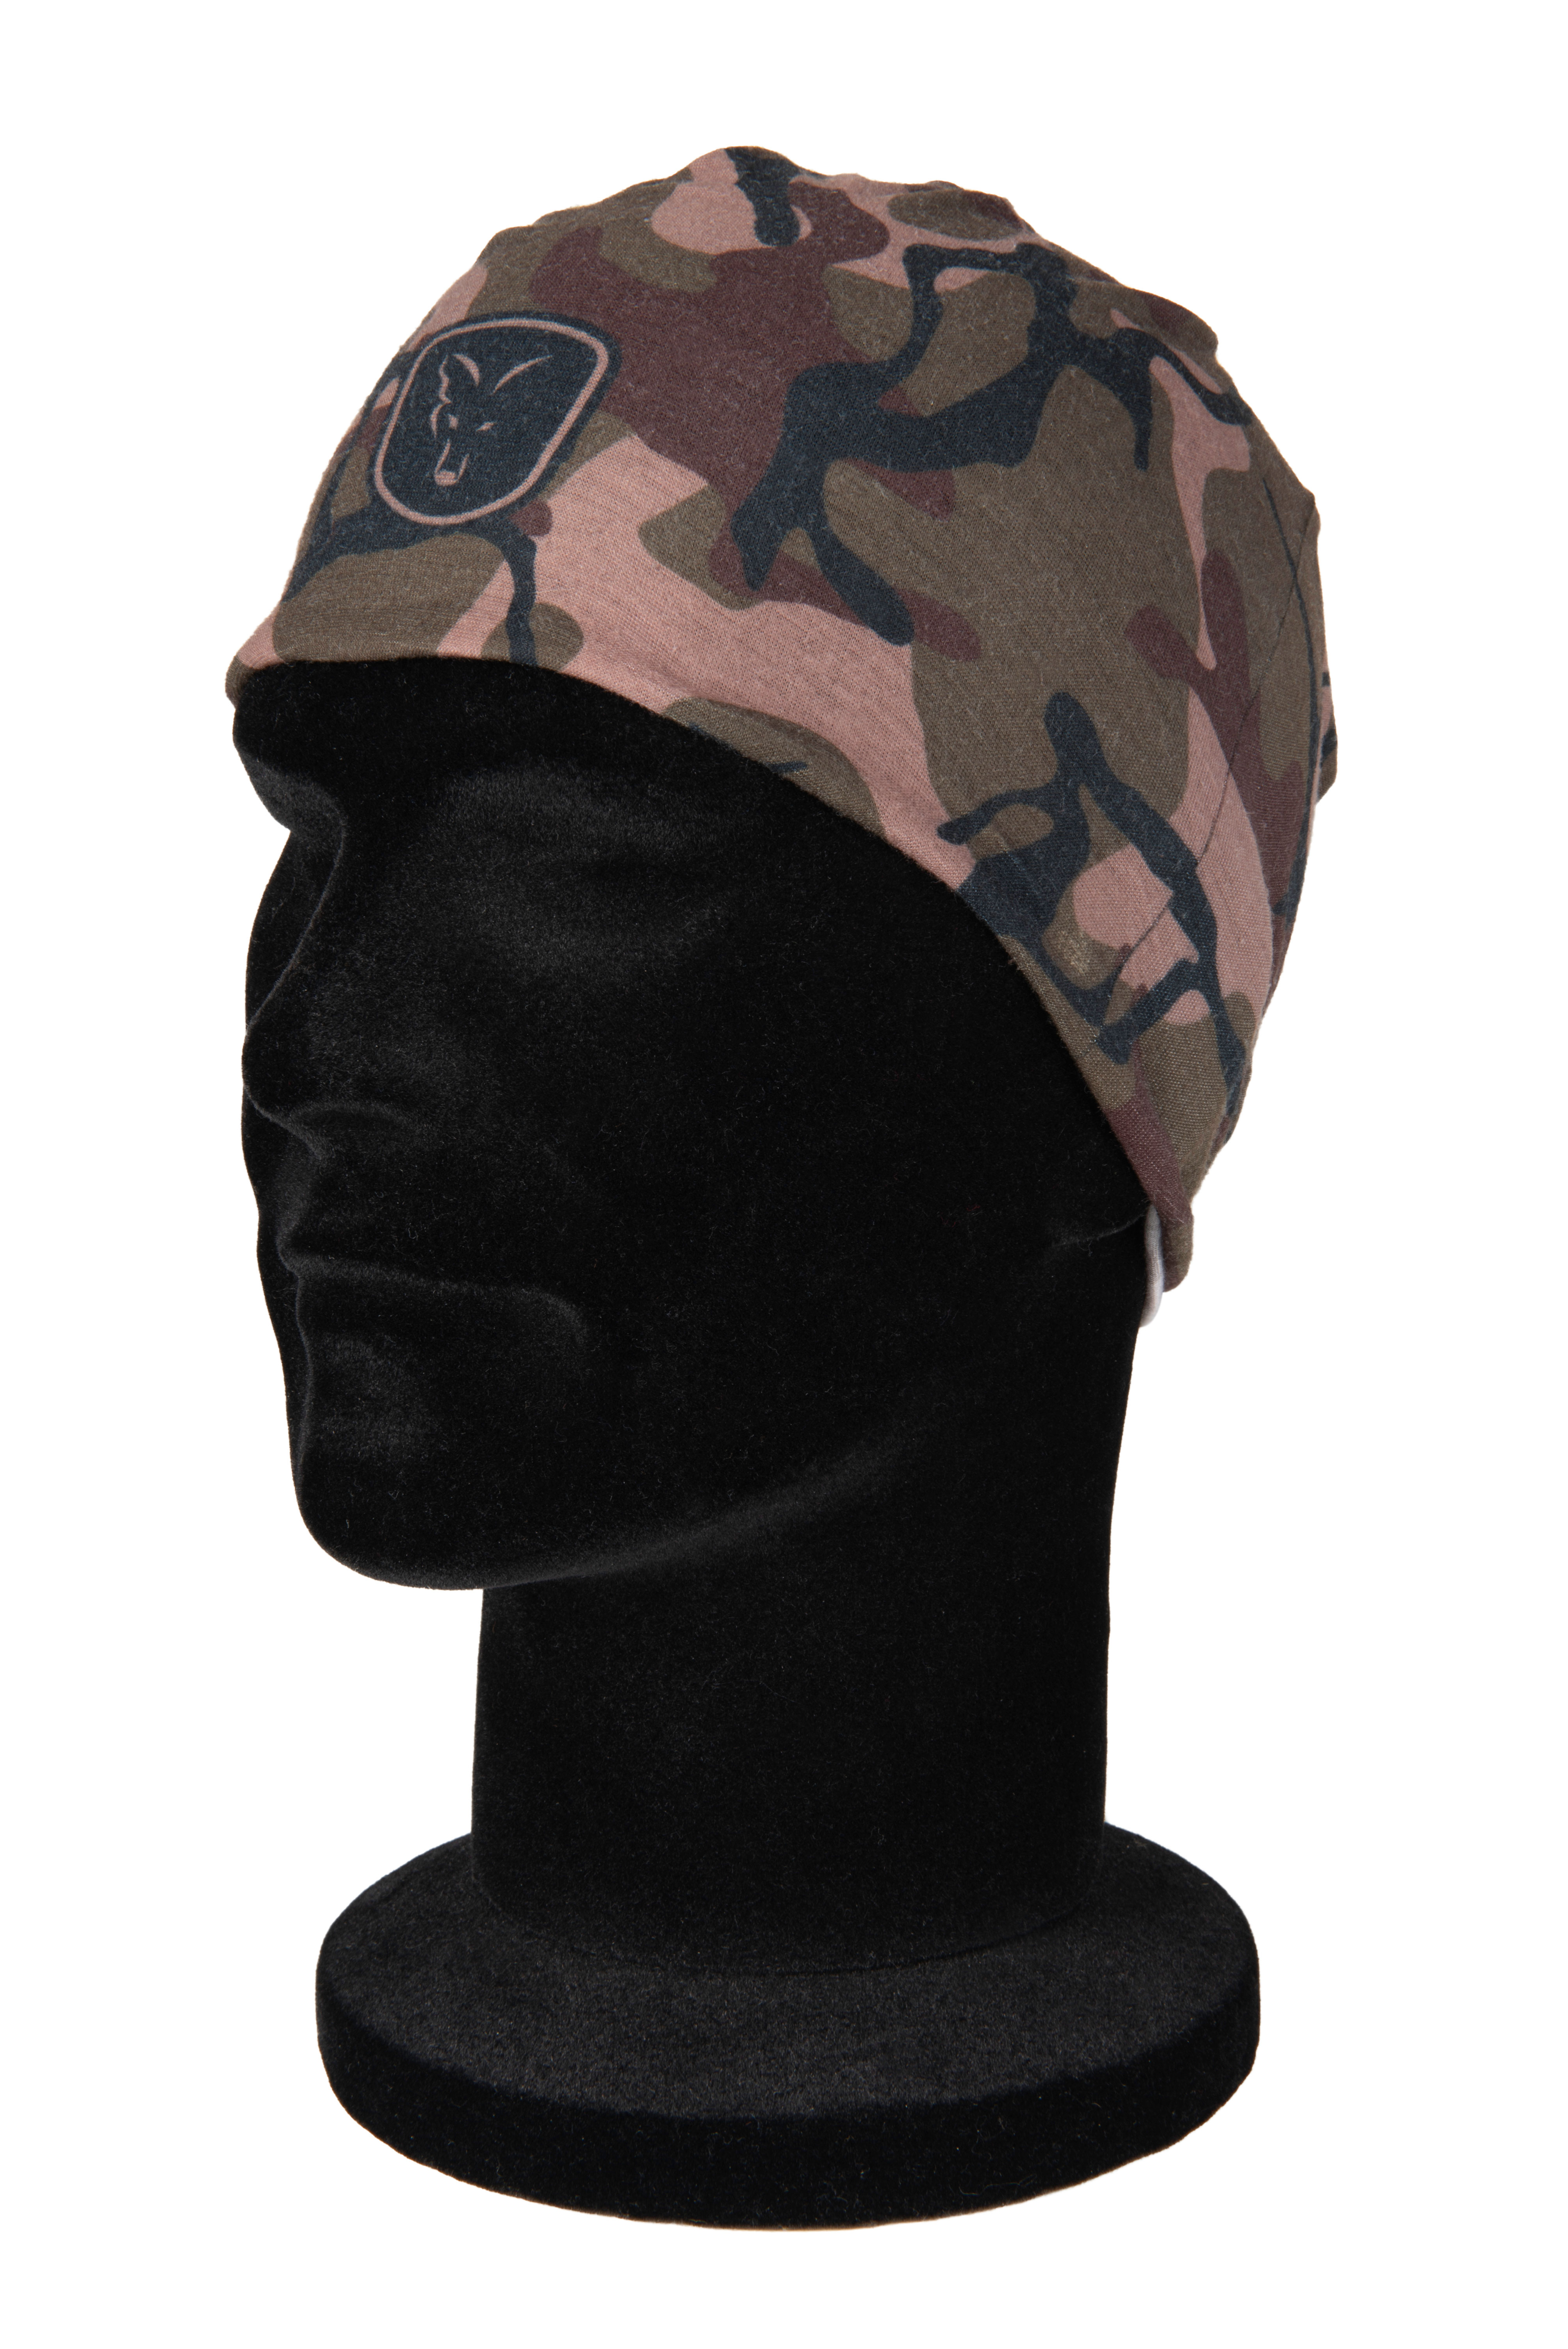 chh008_fox_camo_snood_worn_as_beaniejpg